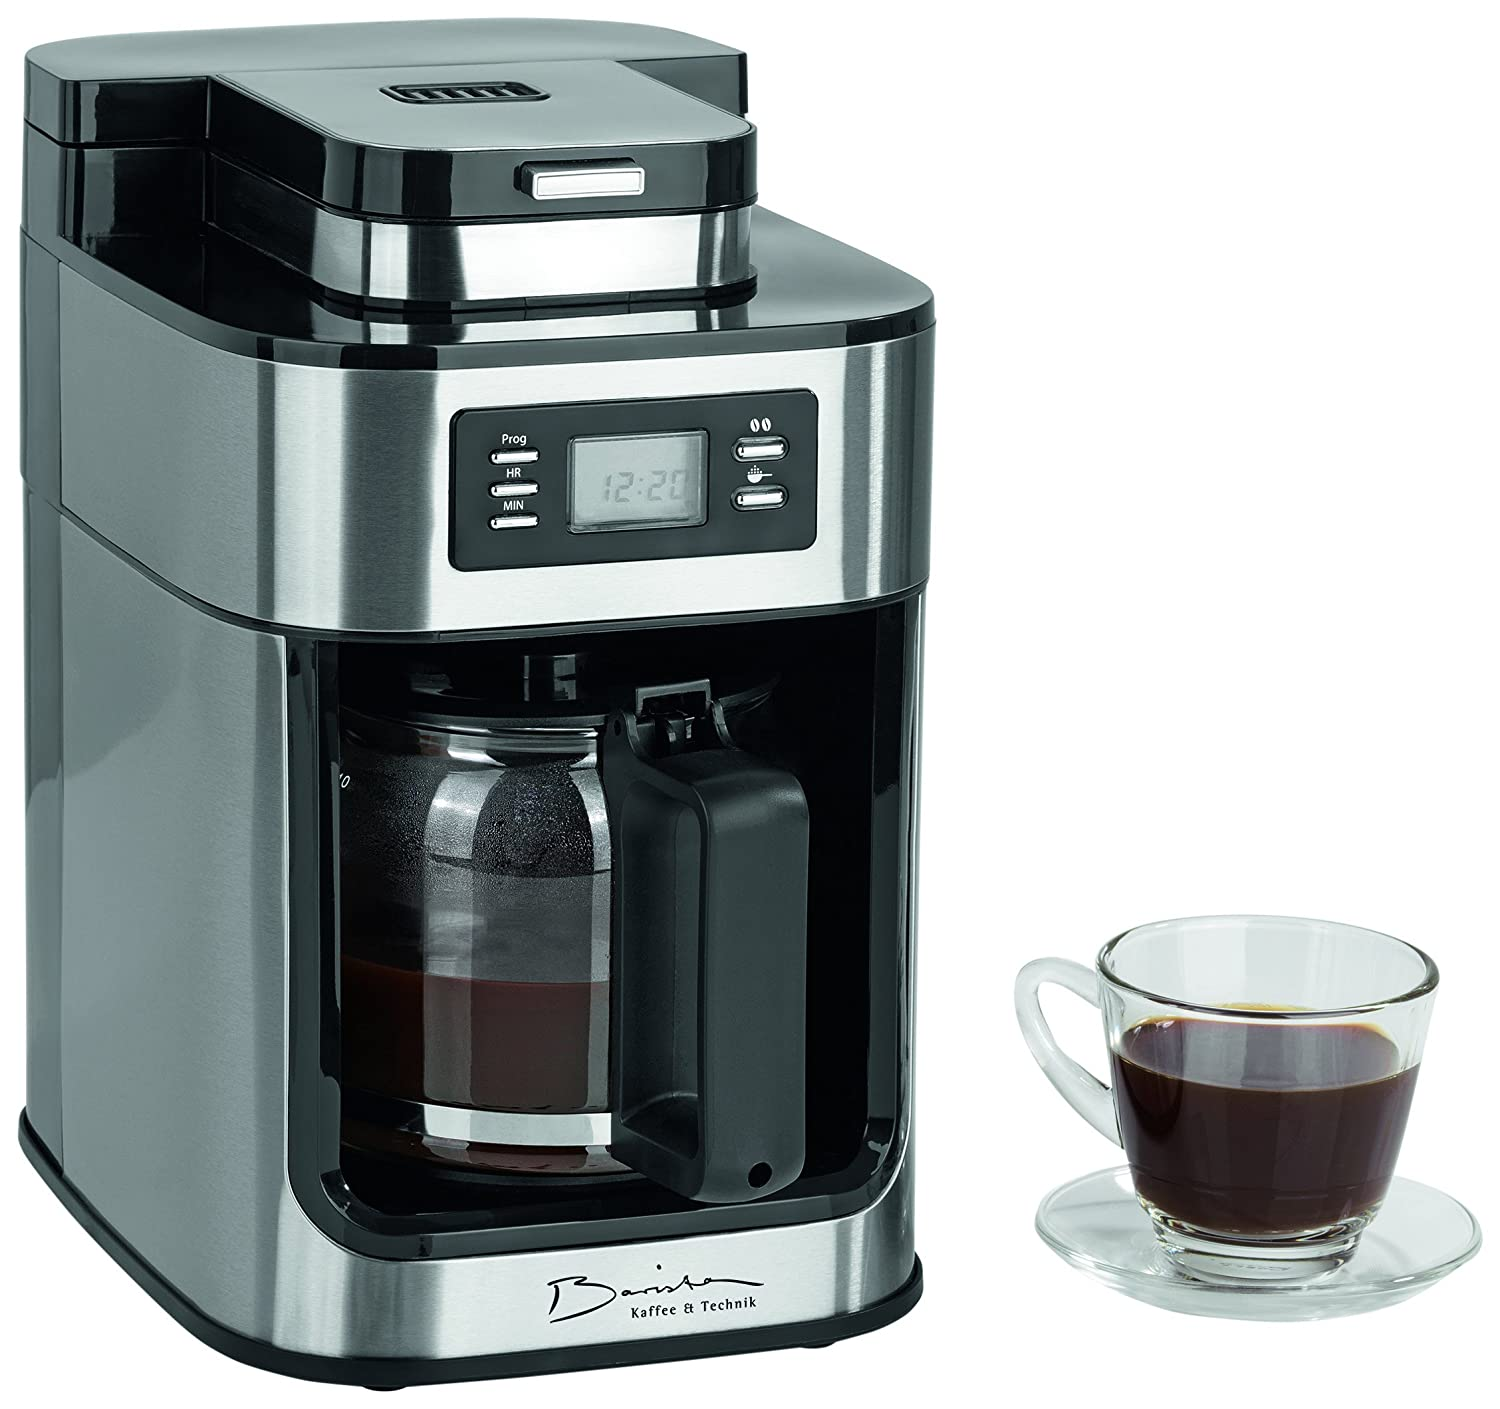 barista 09925 kaffeeautomat mit integriertem mahlwerk 1050 watt edelstahl ebay. Black Bedroom Furniture Sets. Home Design Ideas